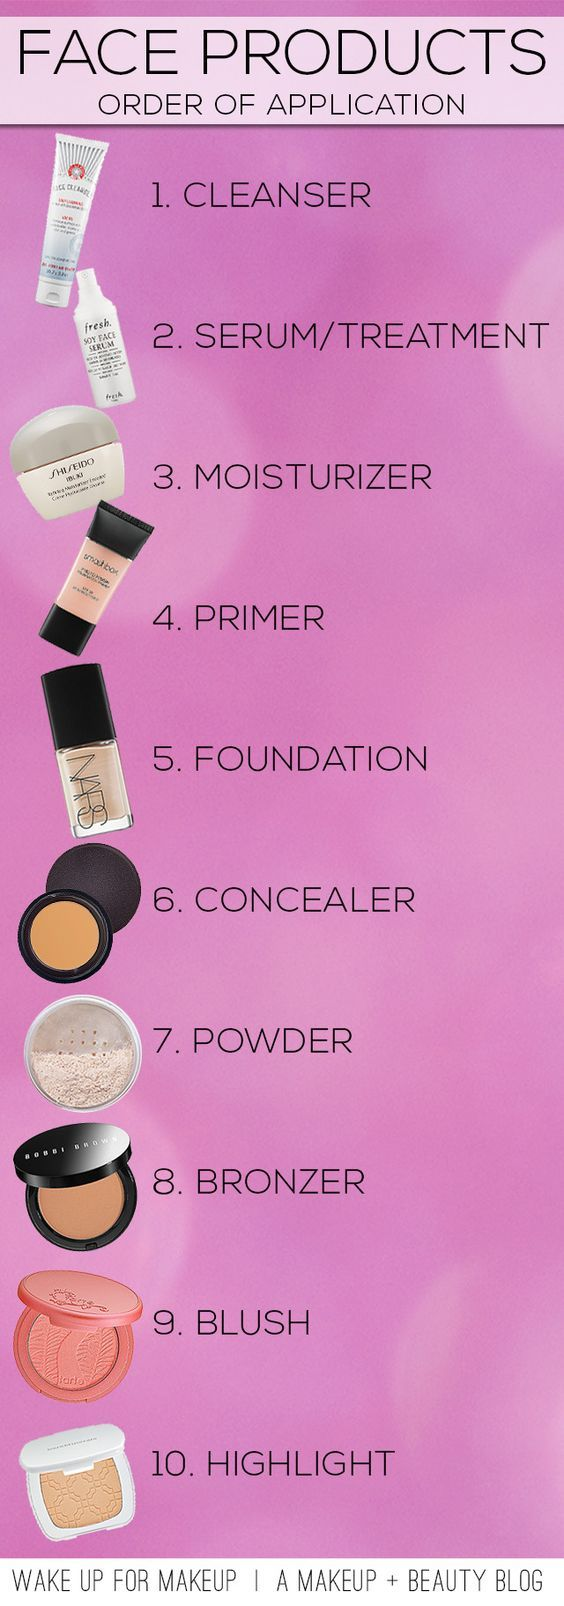 Photo - Face Products: order of application: